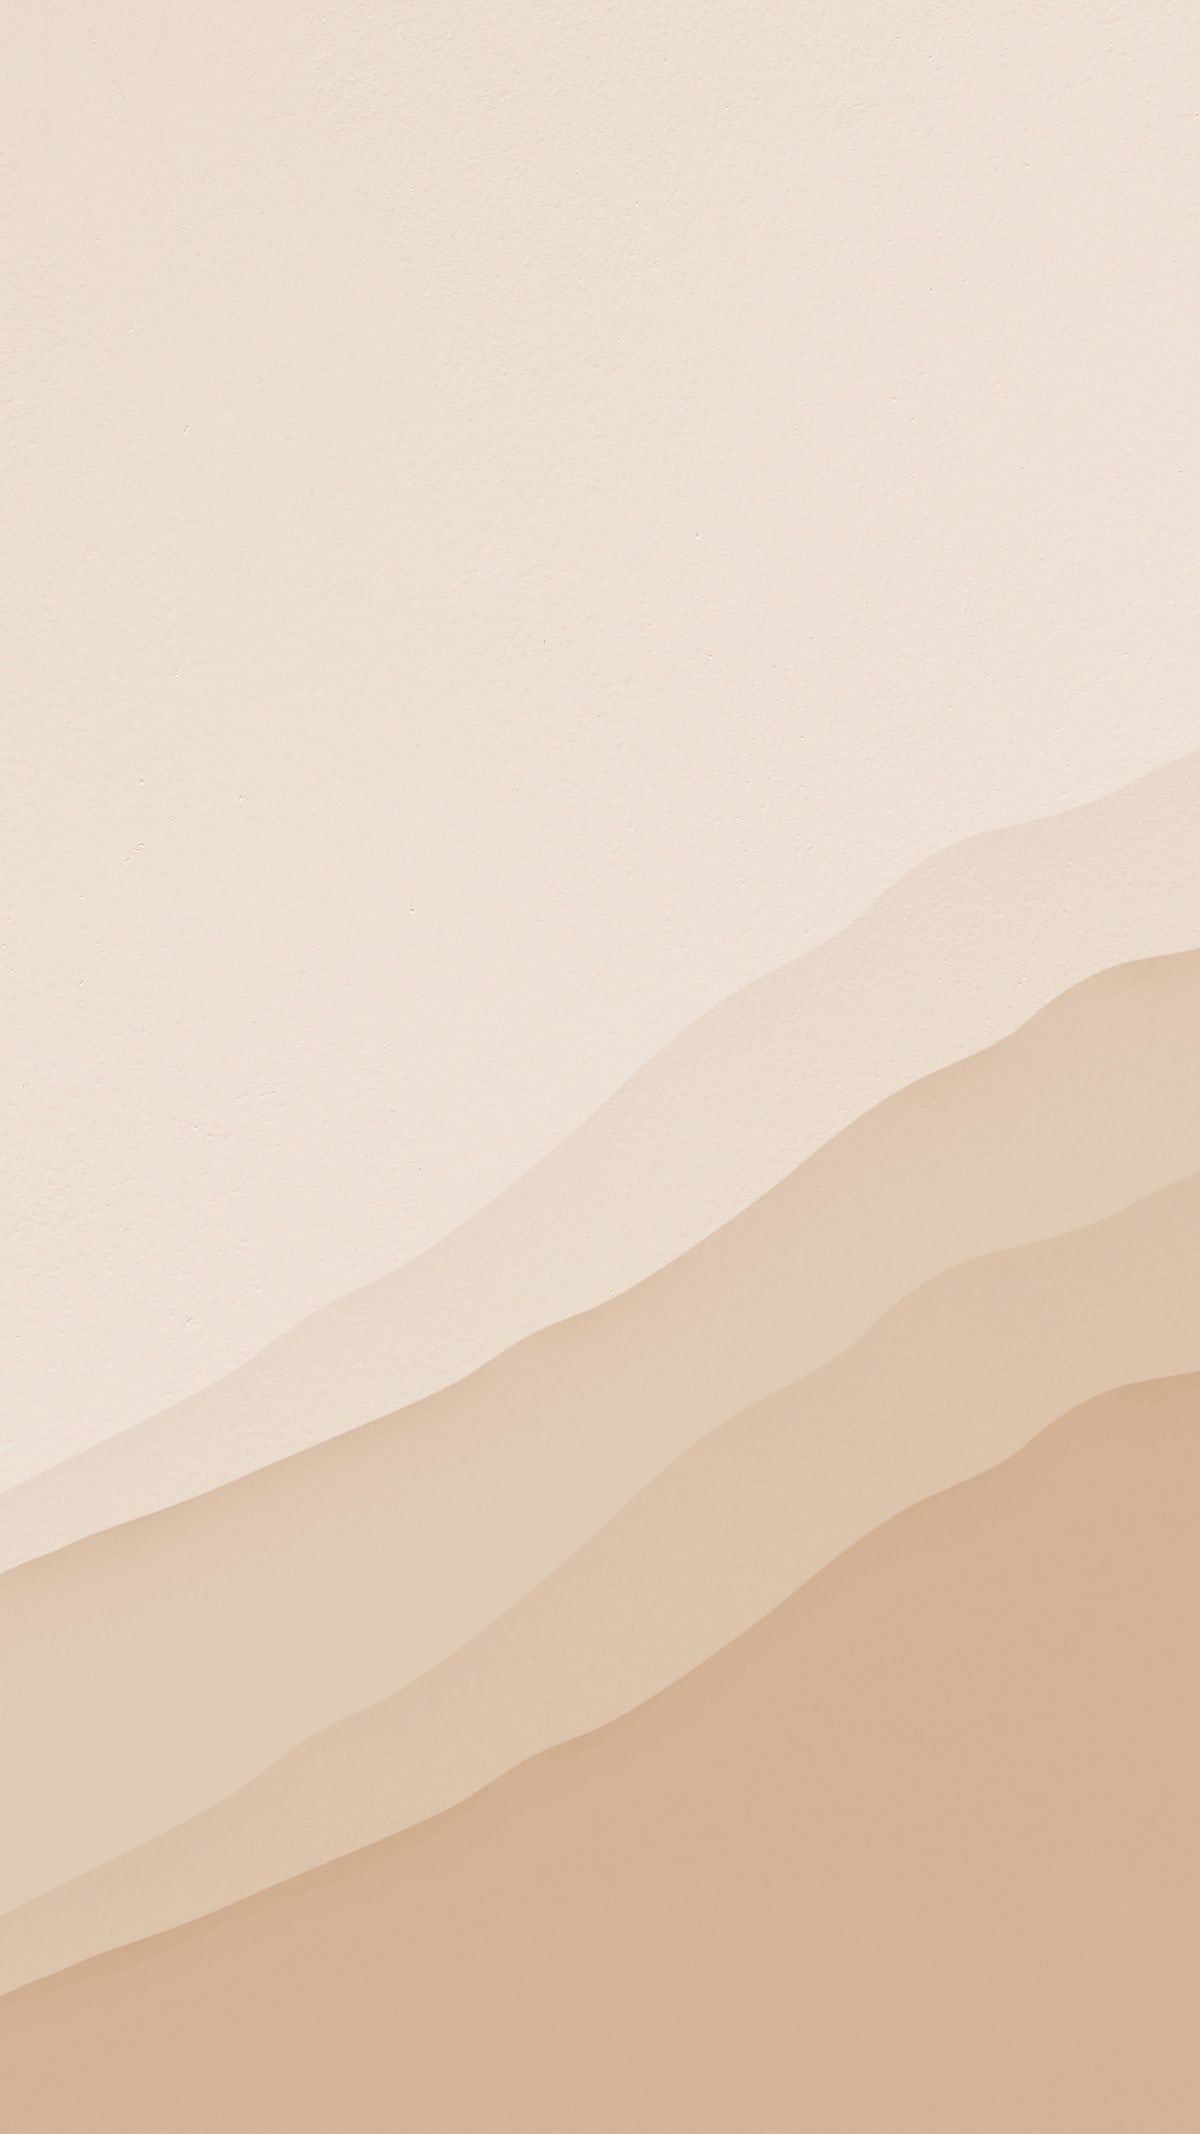 Download free illustration of Abstract beige wallpaper background image